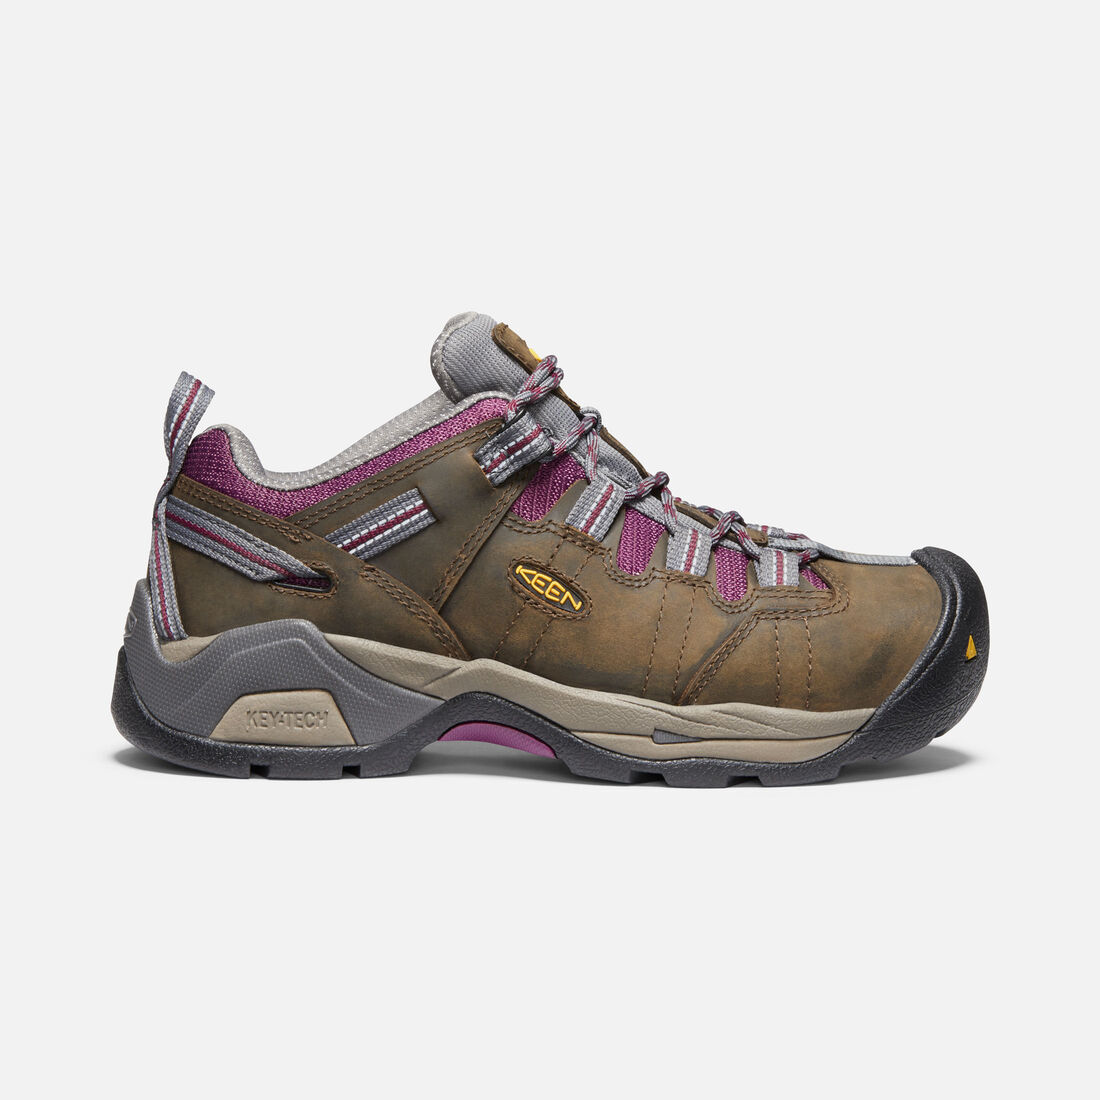 a8d76885825e Women s Detroit XT (Steel Toe) in CACADE BROWN  AMARANTH - large view.